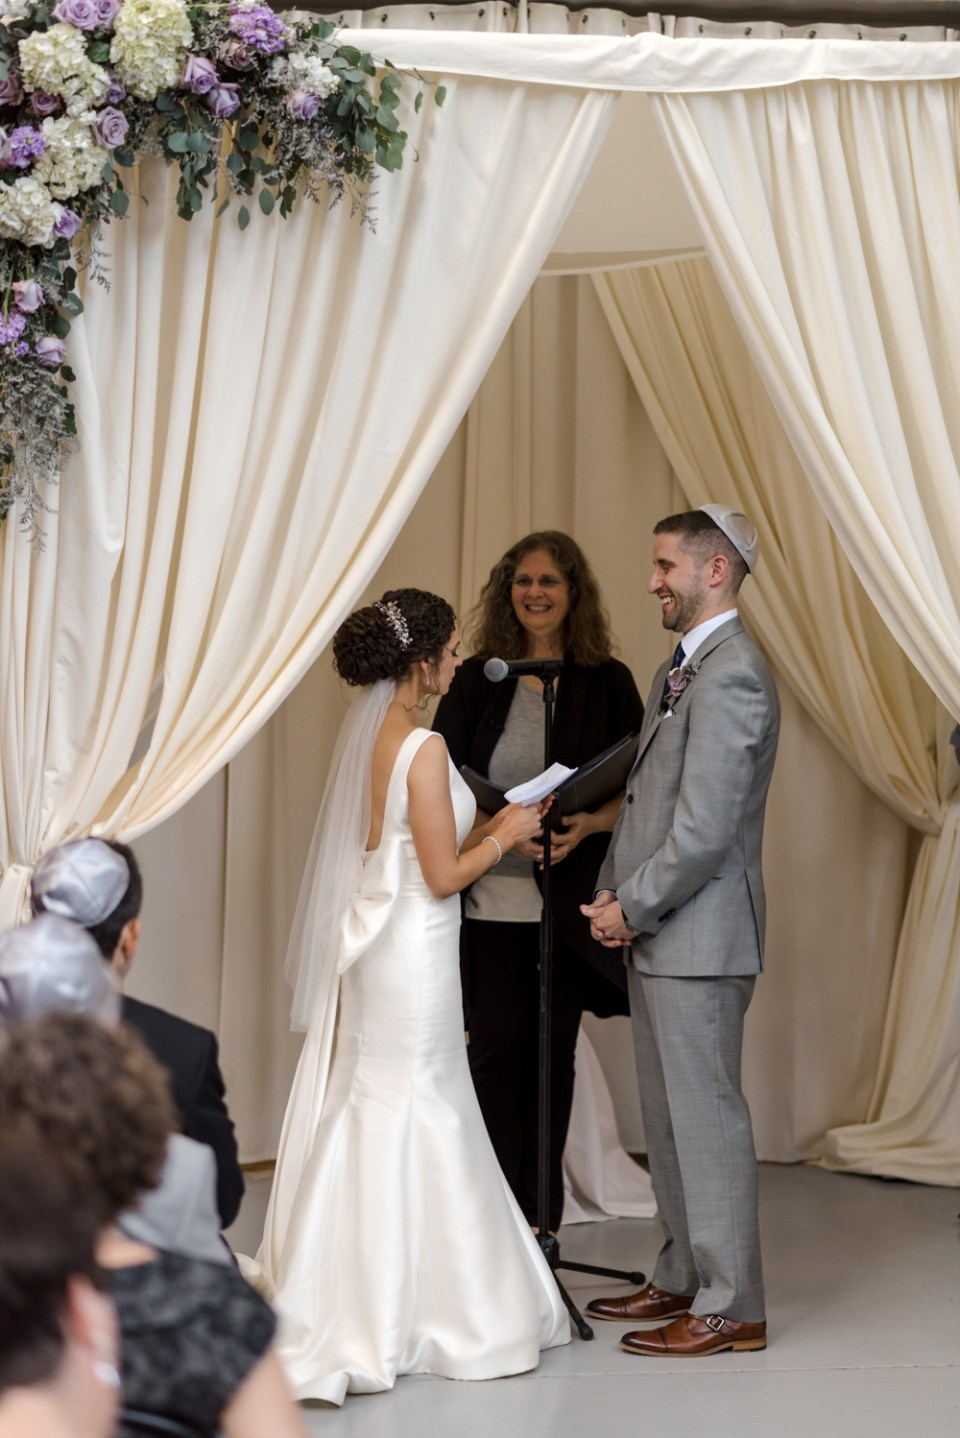 Jewish ceremony at Artifact Events in Chicago IL